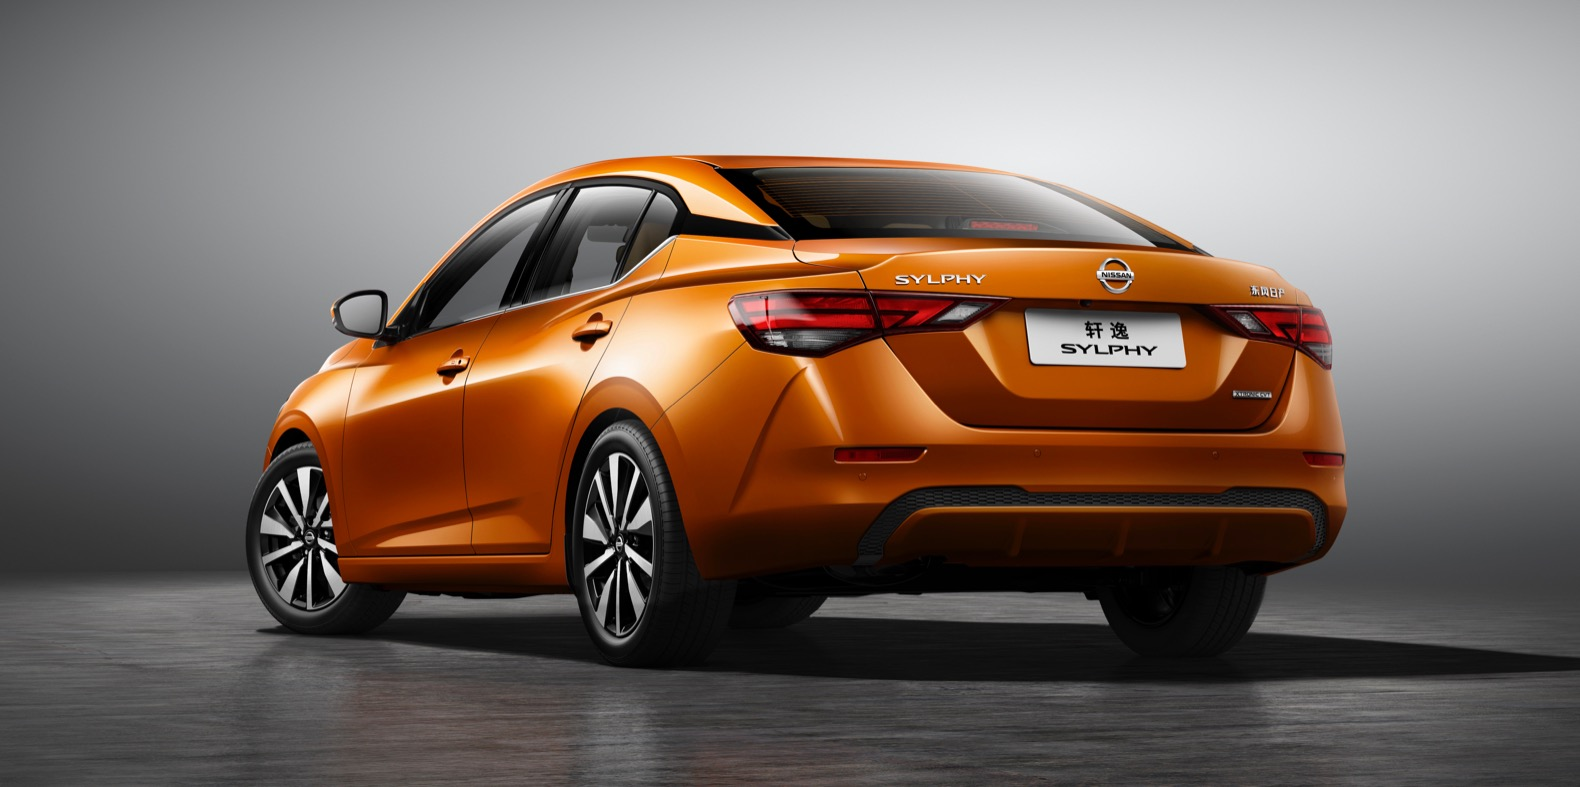 2020 Nissan Sylphy is likely the next-gen Sentra   The ...